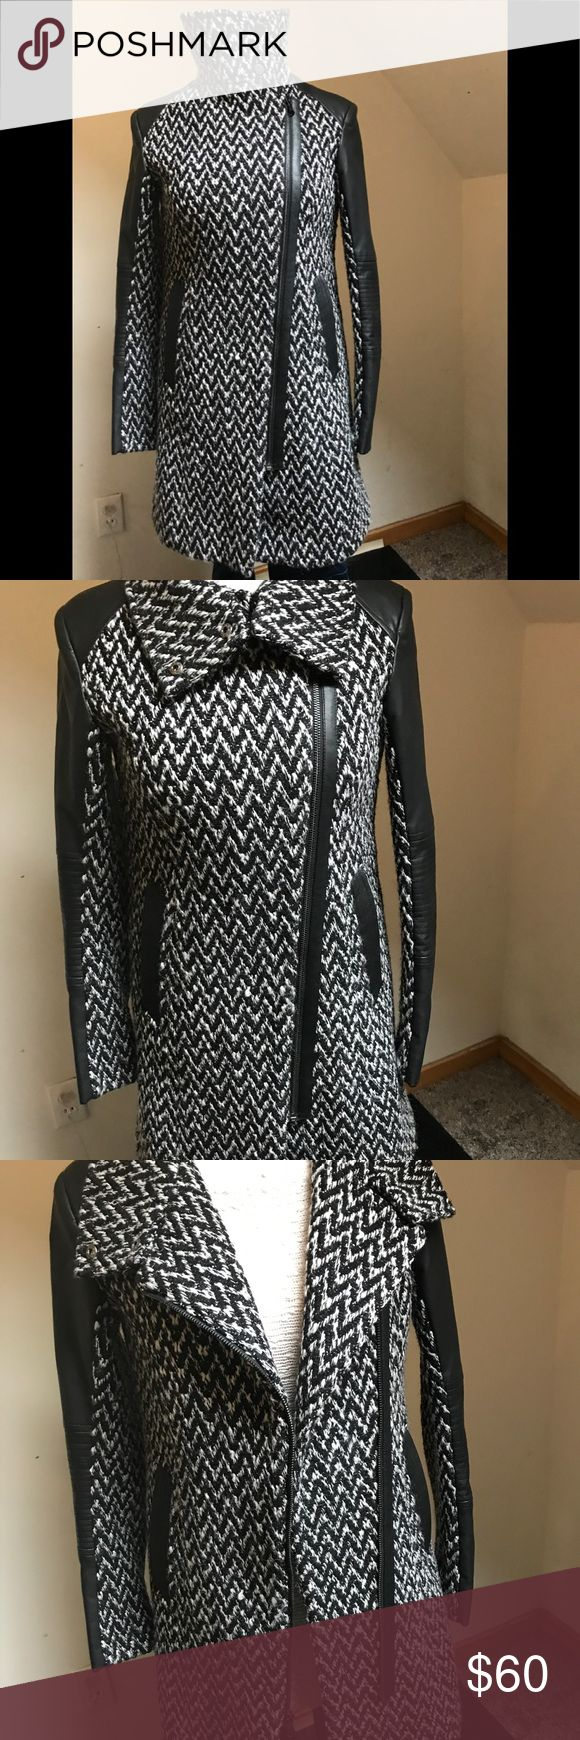 Andrew Marc/ MARC NEW YORK asymmetrical coat. Andrew Marc/ MARC NEW YORK asymmetrical zipper  coat.  Fully lined with 2 side pockets . Black Faux leather trim . Hits above the knee.  Barely worn & in excellent condition. Color is black & white in  chevron tweed pattern. Andrew Marc Jackets & Coats